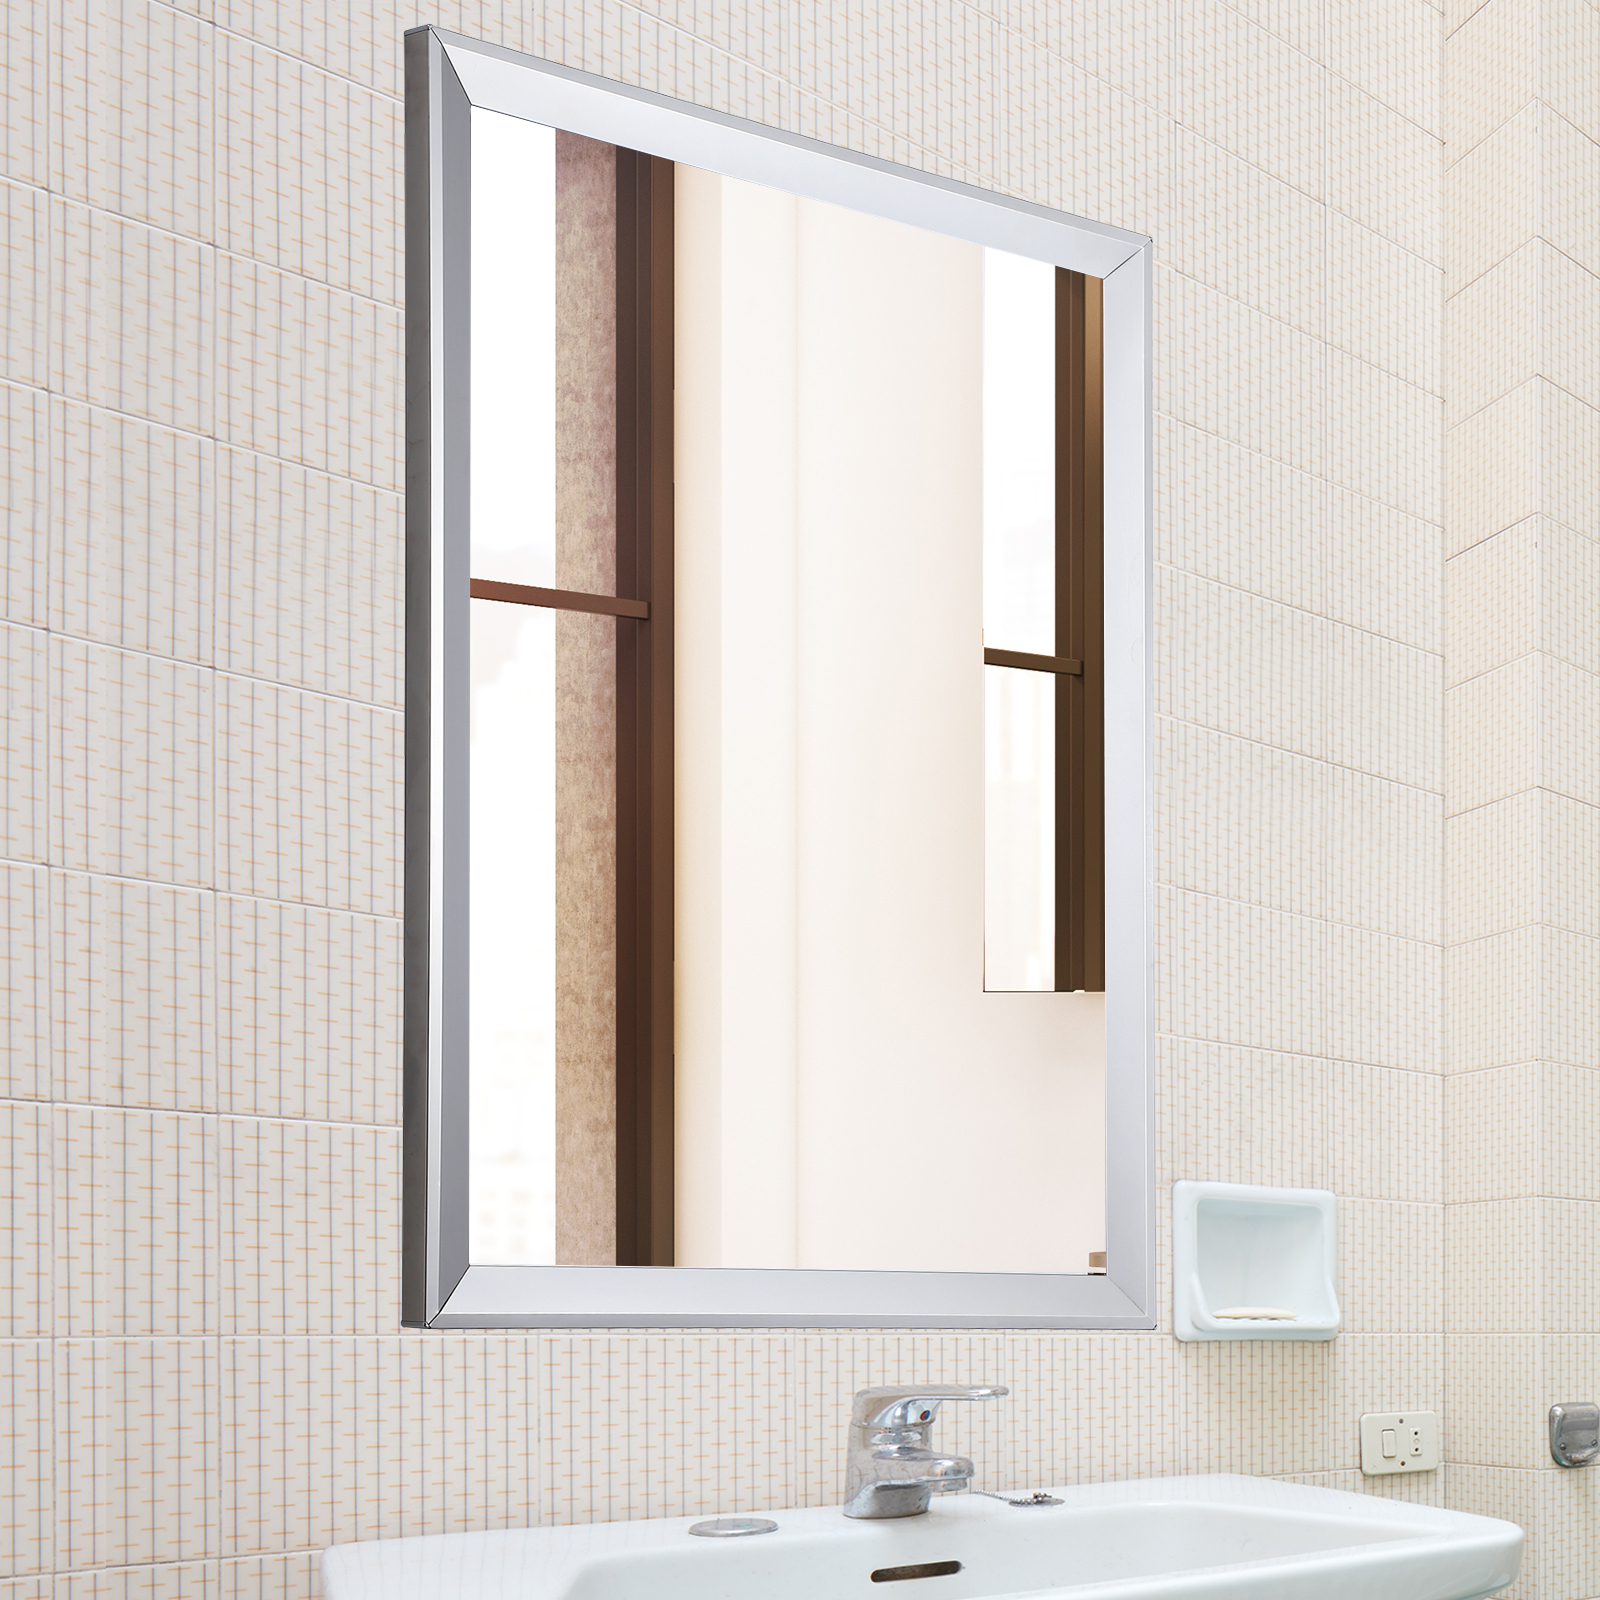 "Frame Bathroom Wall Mirrors Regarding Trendy Details About 24""x32"" Framed Bathroom Wall Mirror Rectangular Vanity Glass Beveled Home Decor (View 15 of 20)"